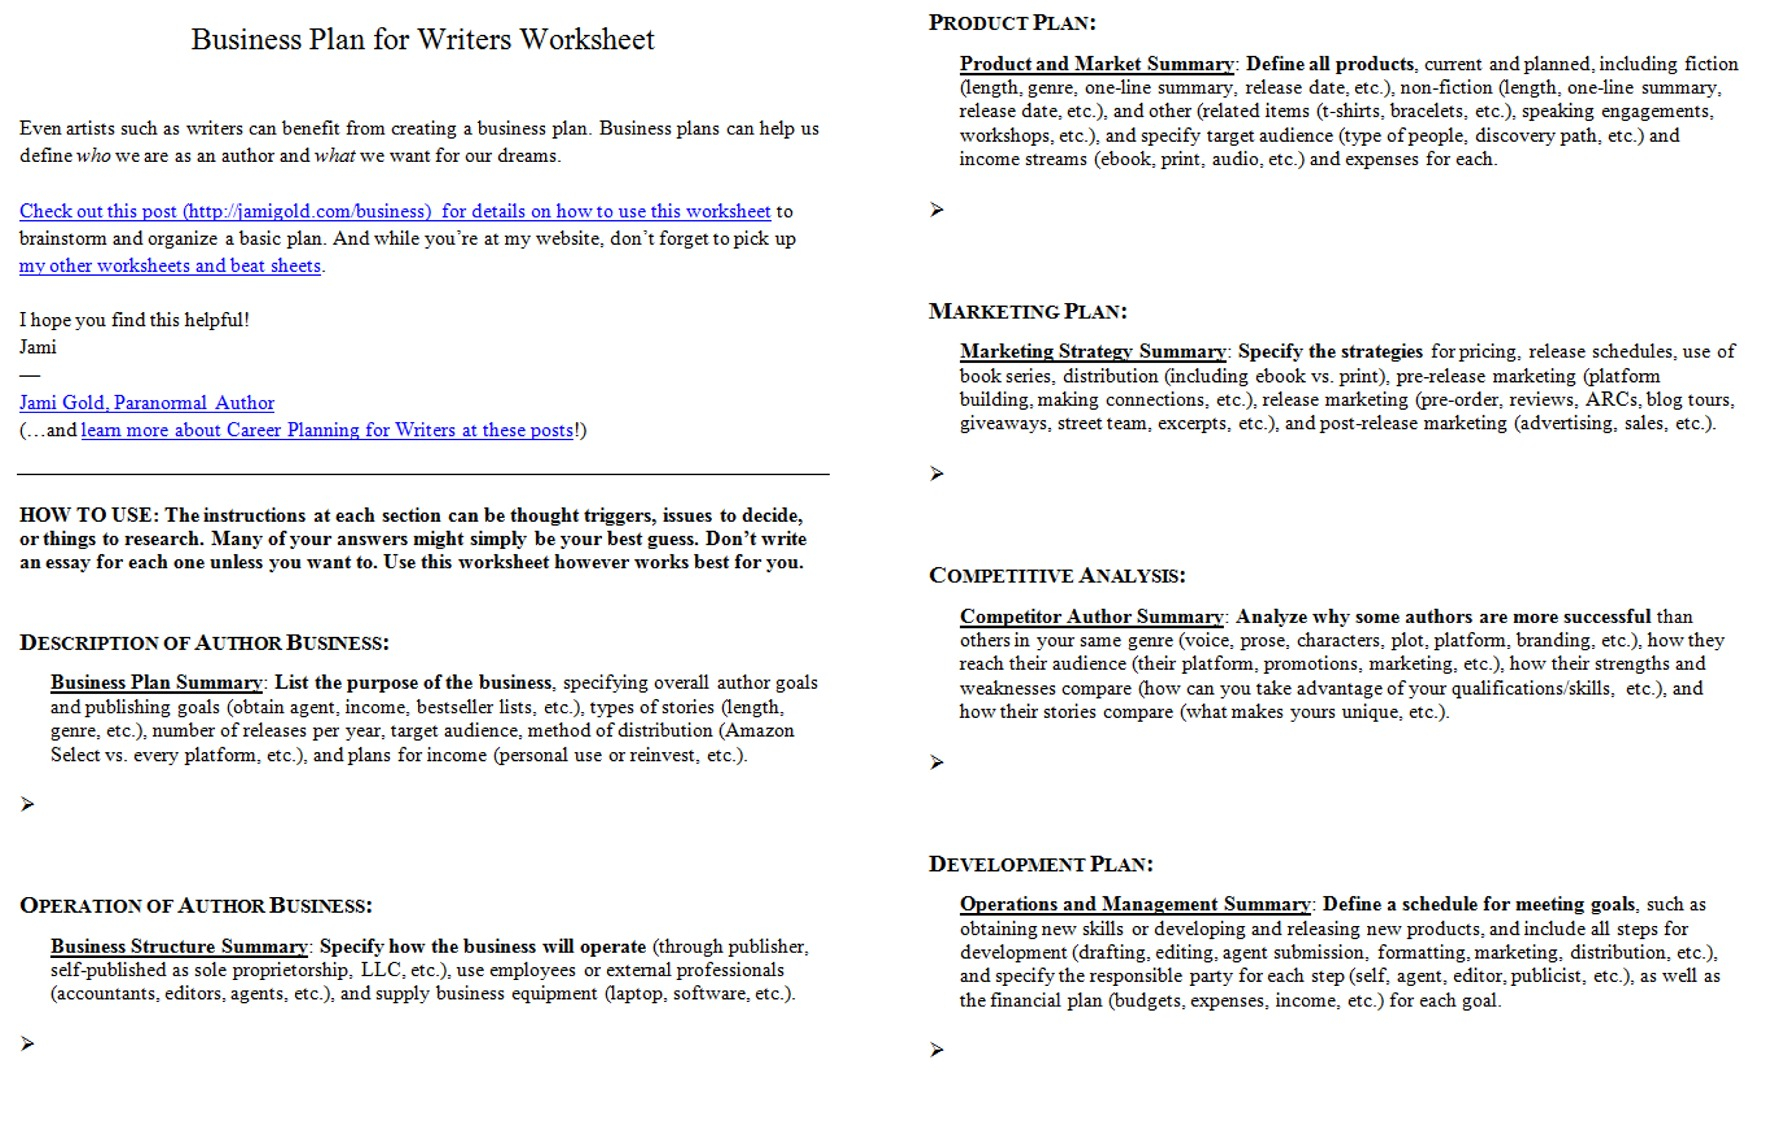 Aldiablosus  Ravishing Worksheets For Writers  Jami Gold Paranormal Author With Remarkable Screen Shot Of Both Pages Of The Business Plan For Writers Worksheet With Archaic Composer Worksheets Also Worksheet Genius In Addition Holt Earth Science Worksheets And Combine Multiple Excel Worksheets Into One As Well As Main And Helping Verbs Worksheet Additionally Landforms And Bodies Of Water Worksheet From Jamigoldcom With Aldiablosus  Remarkable Worksheets For Writers  Jami Gold Paranormal Author With Archaic Screen Shot Of Both Pages Of The Business Plan For Writers Worksheet And Ravishing Composer Worksheets Also Worksheet Genius In Addition Holt Earth Science Worksheets From Jamigoldcom